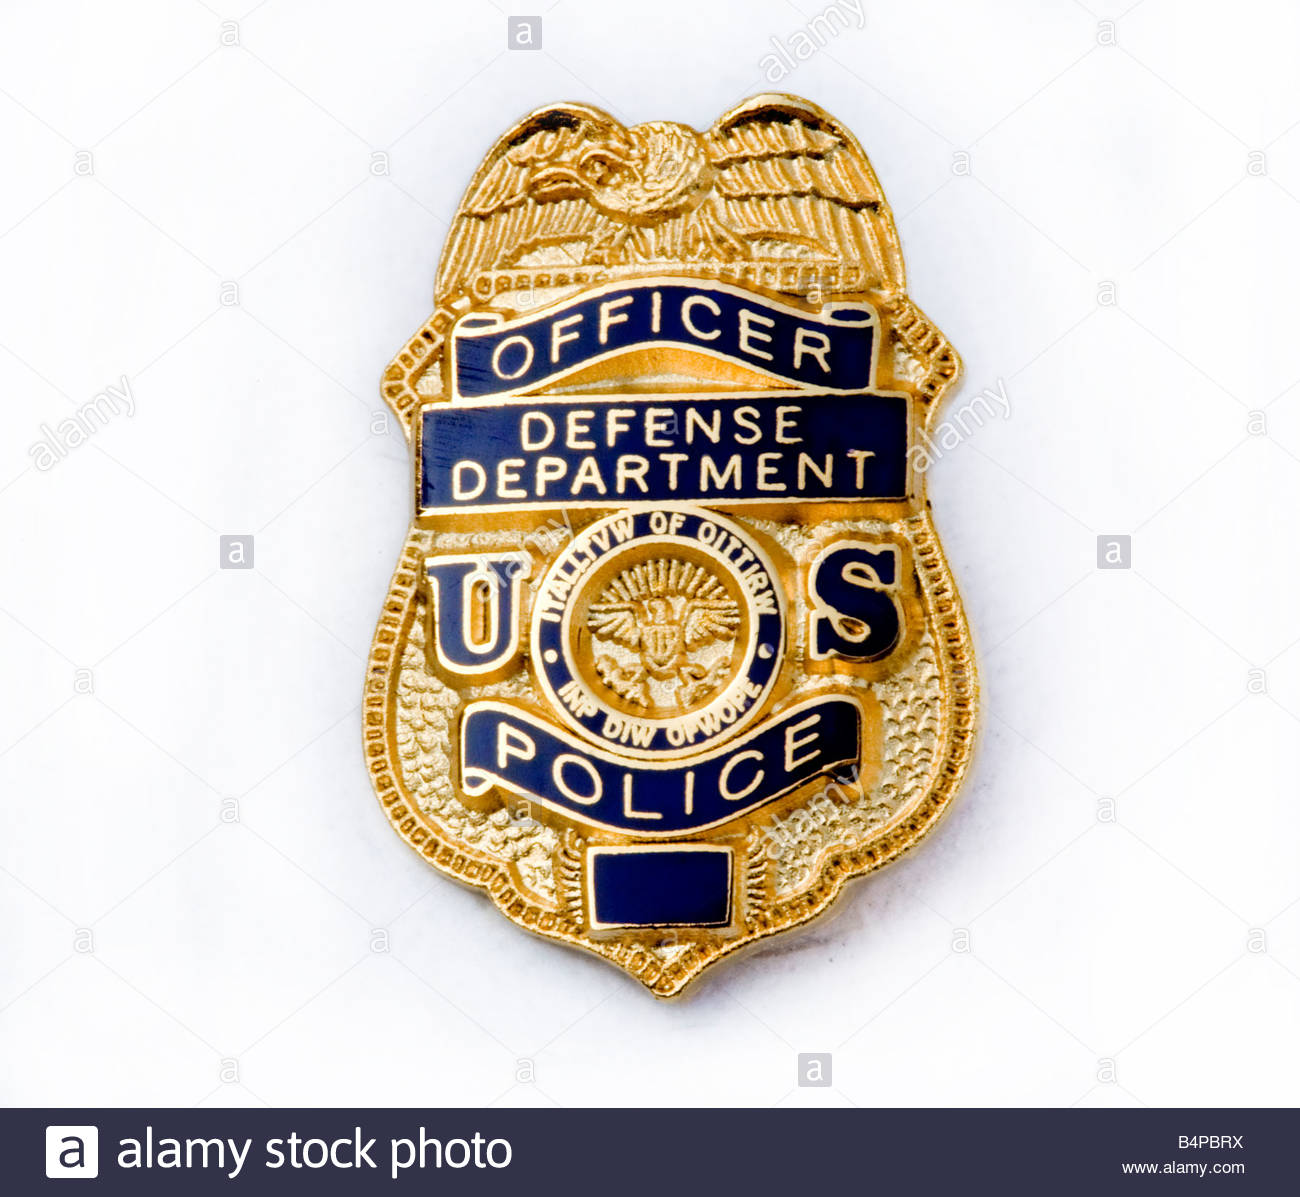 us defence department police badge stock photo royalty free image